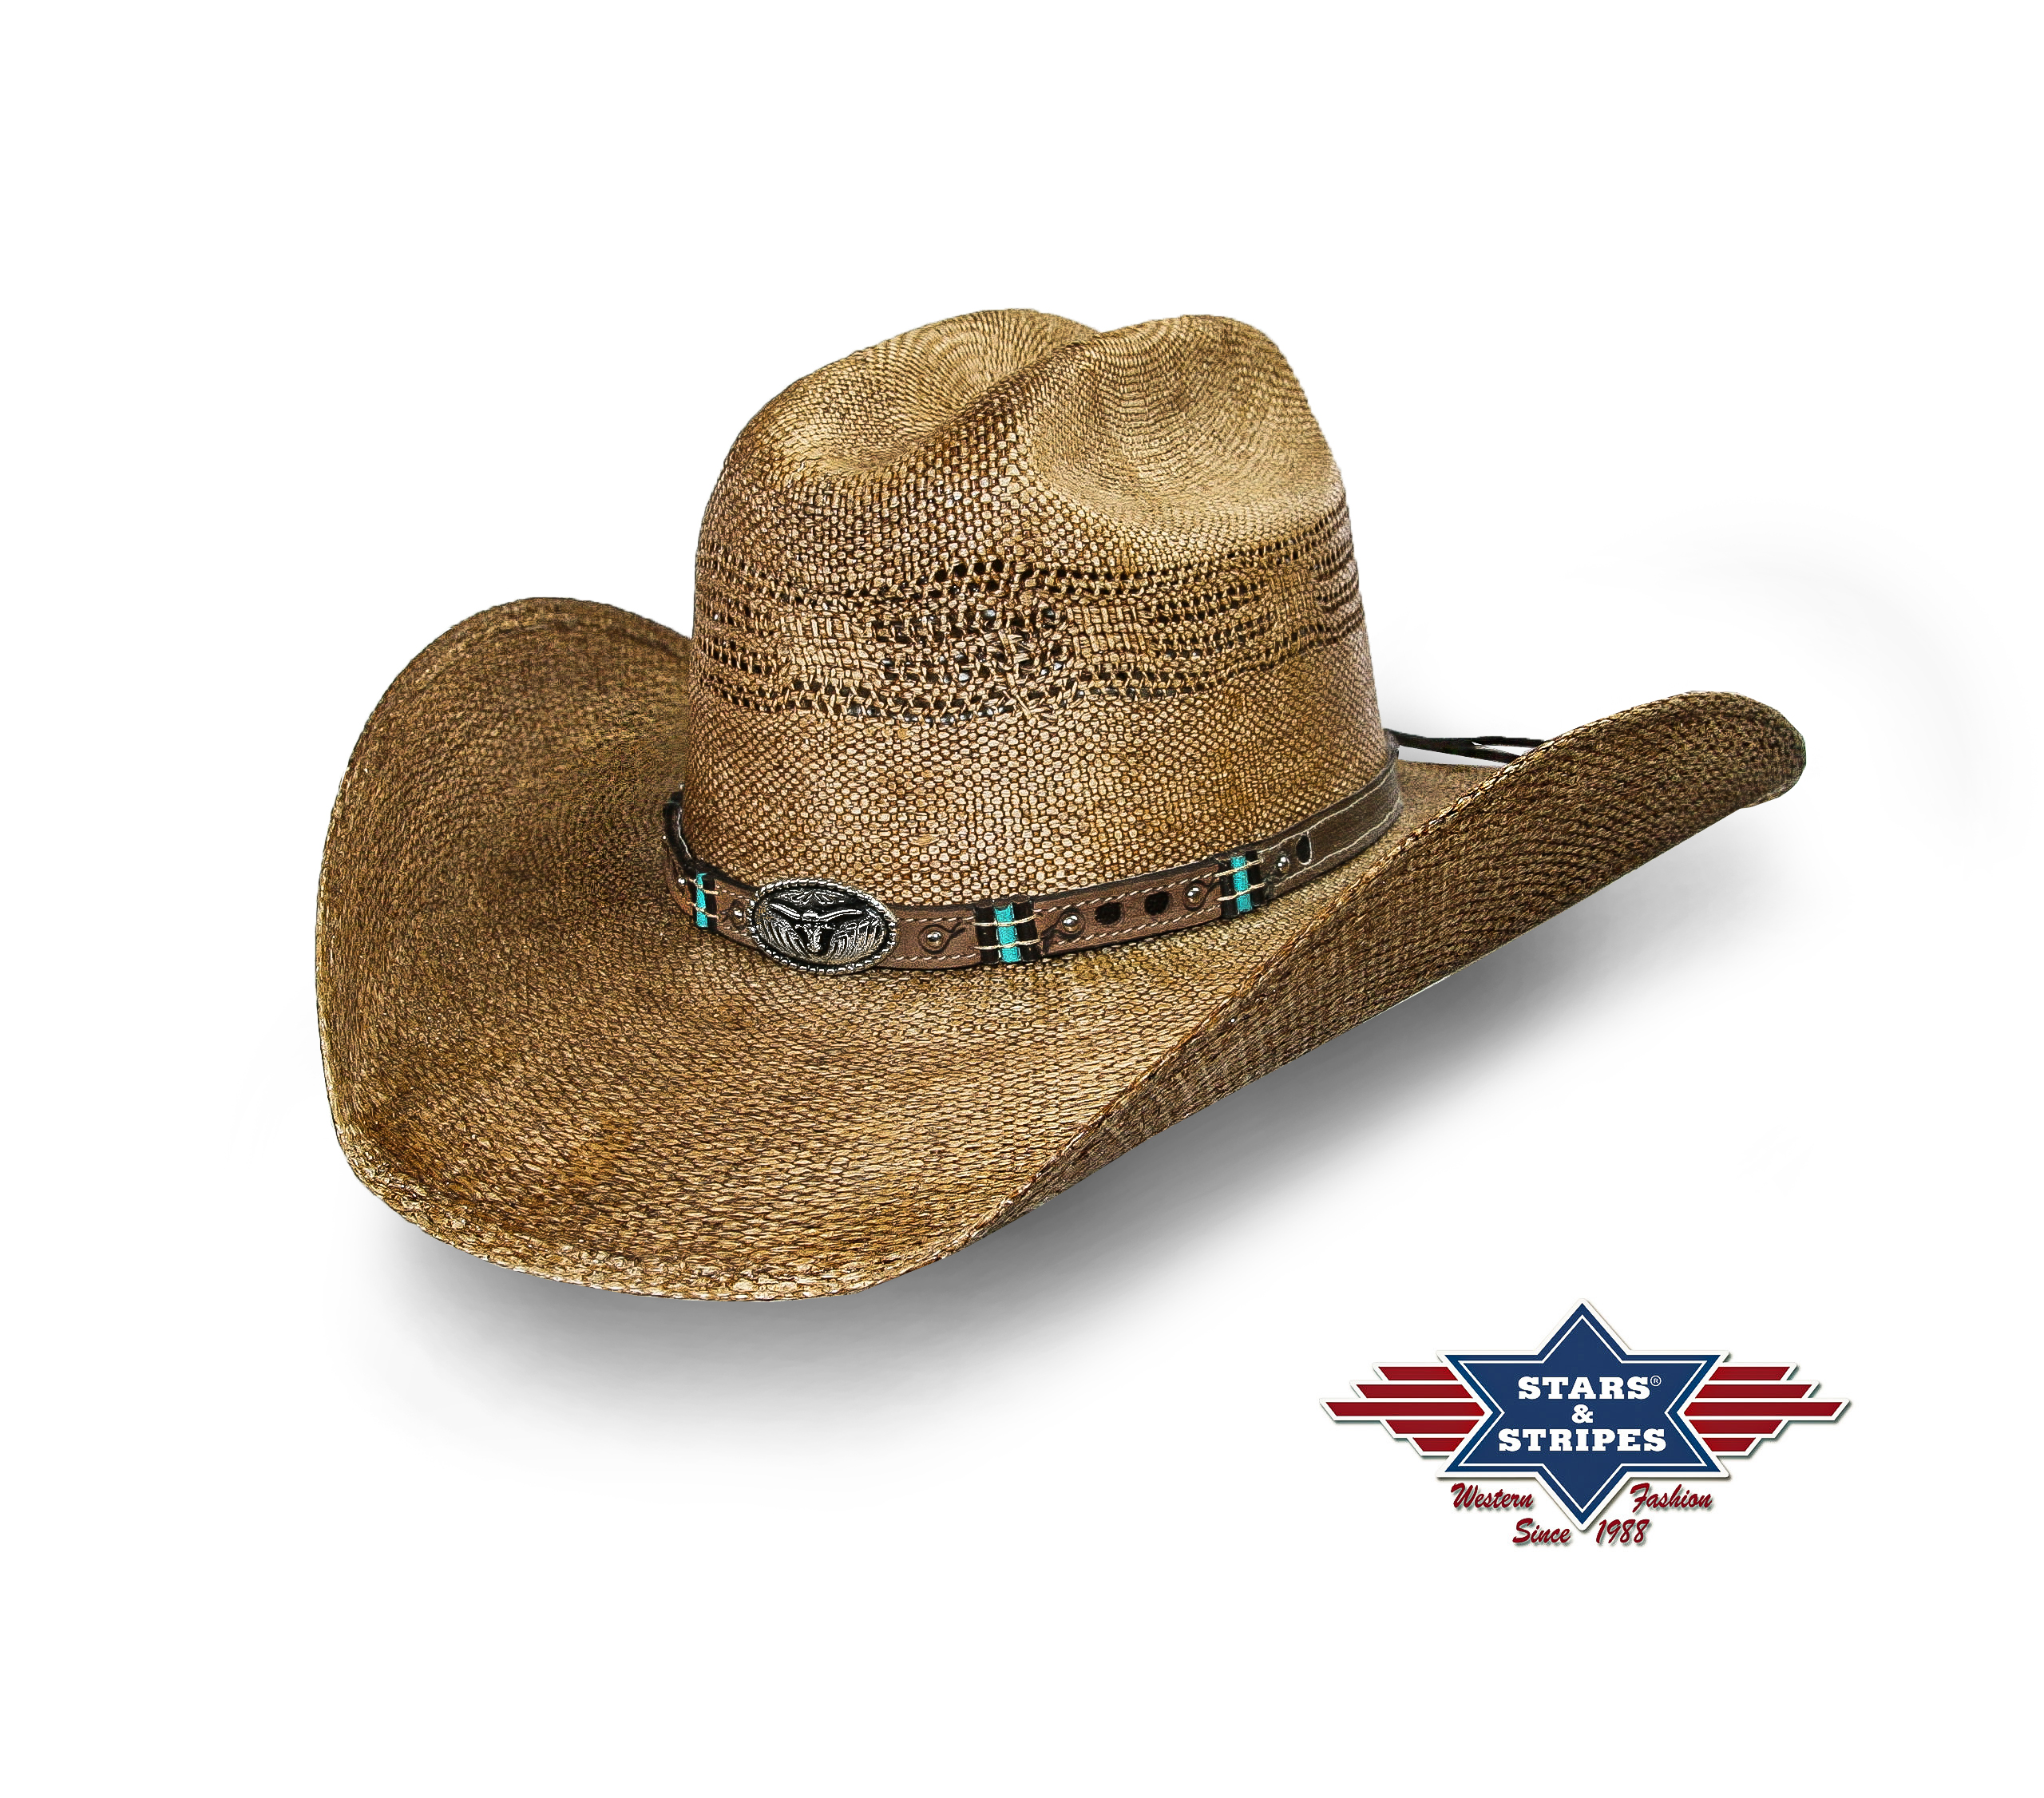 Cappello western Stars & Stripes Pinedale